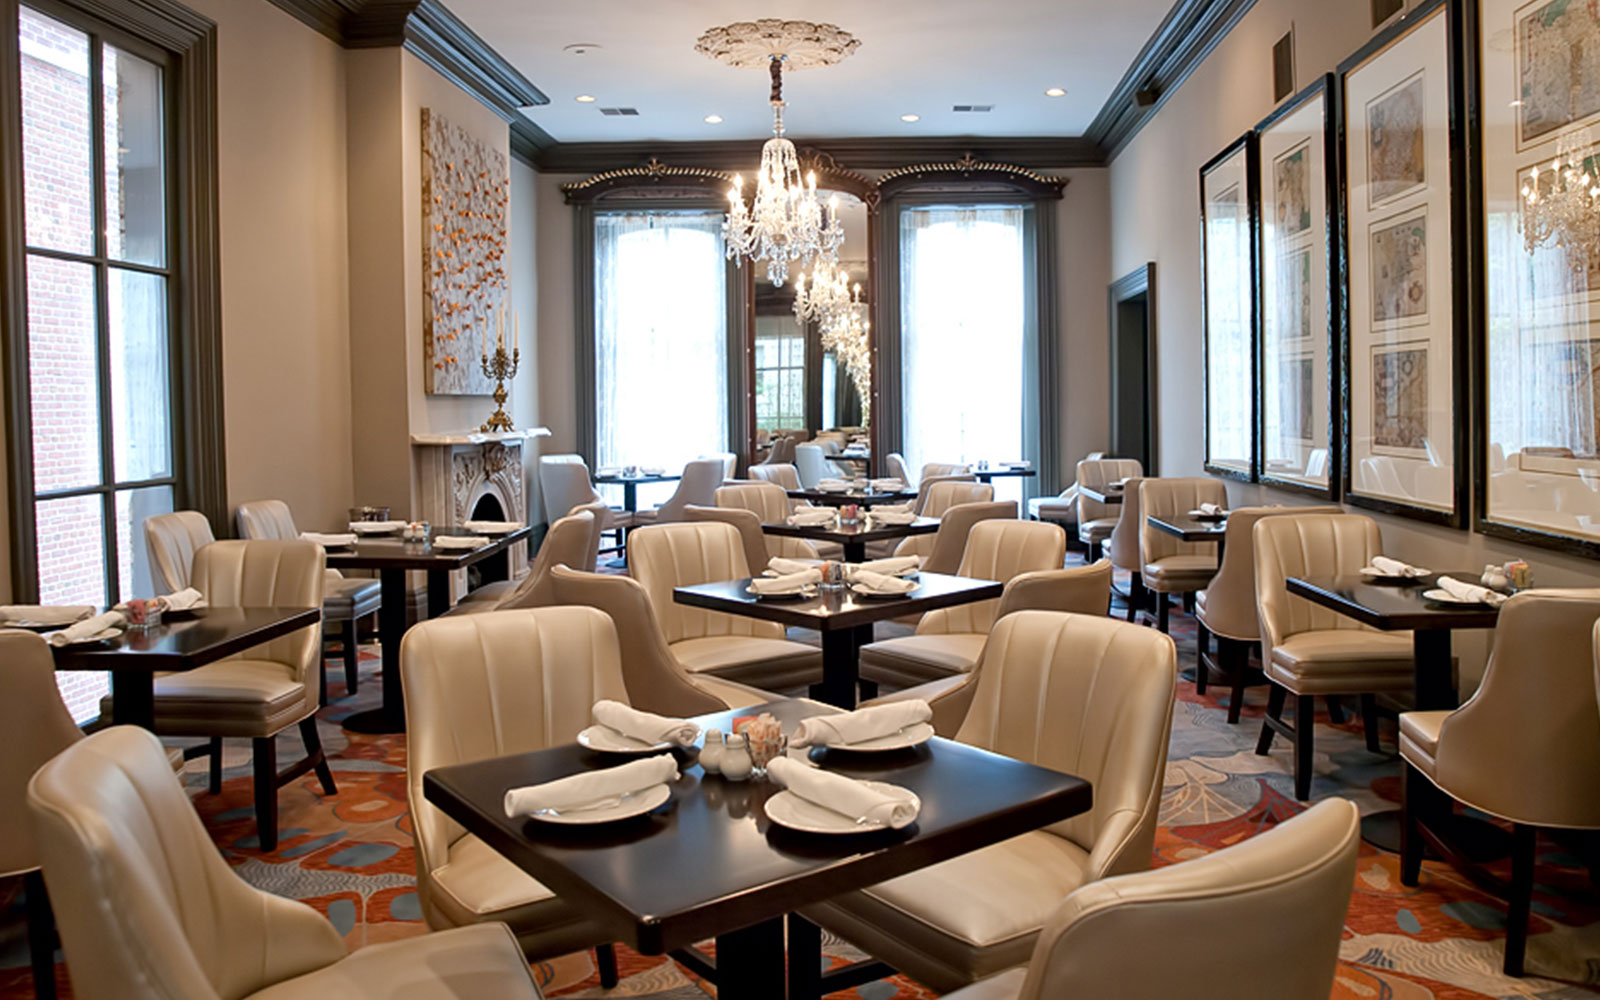 Elegant Washington DC Restaurant MorrisonClark Inn - Table restaurant dc